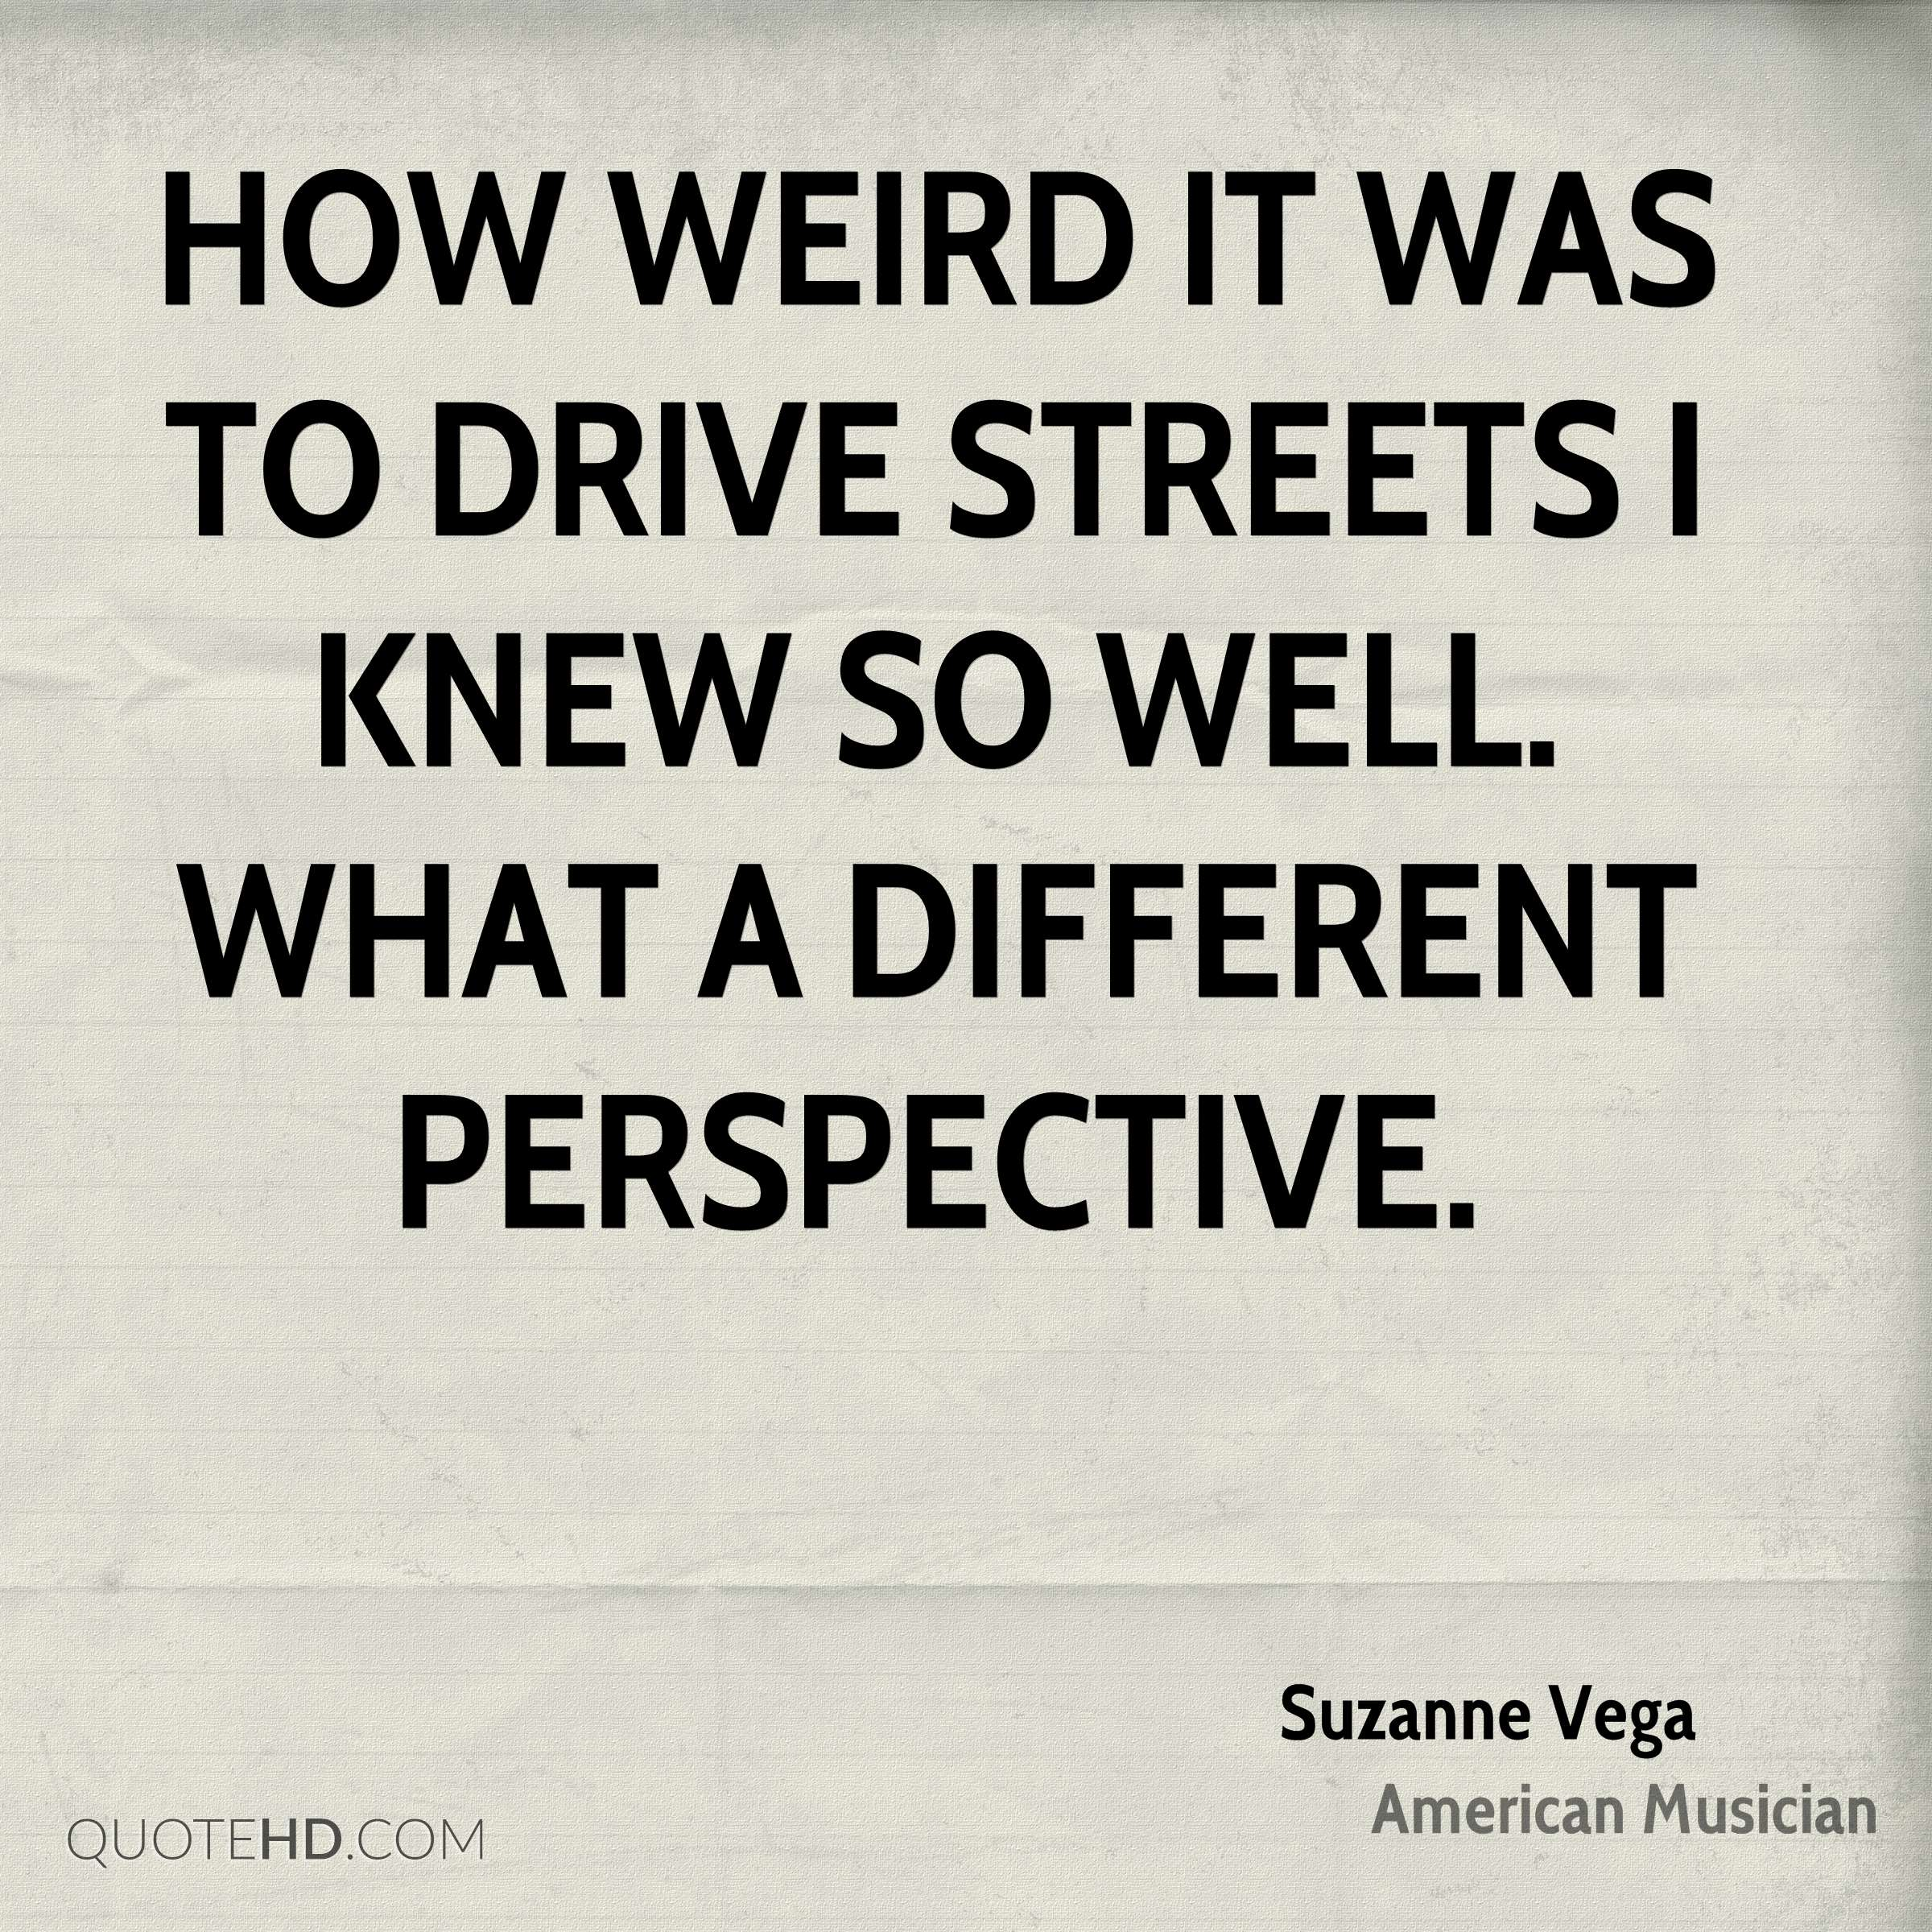 How weird it was to drive streets I knew so well. What a different perspective.